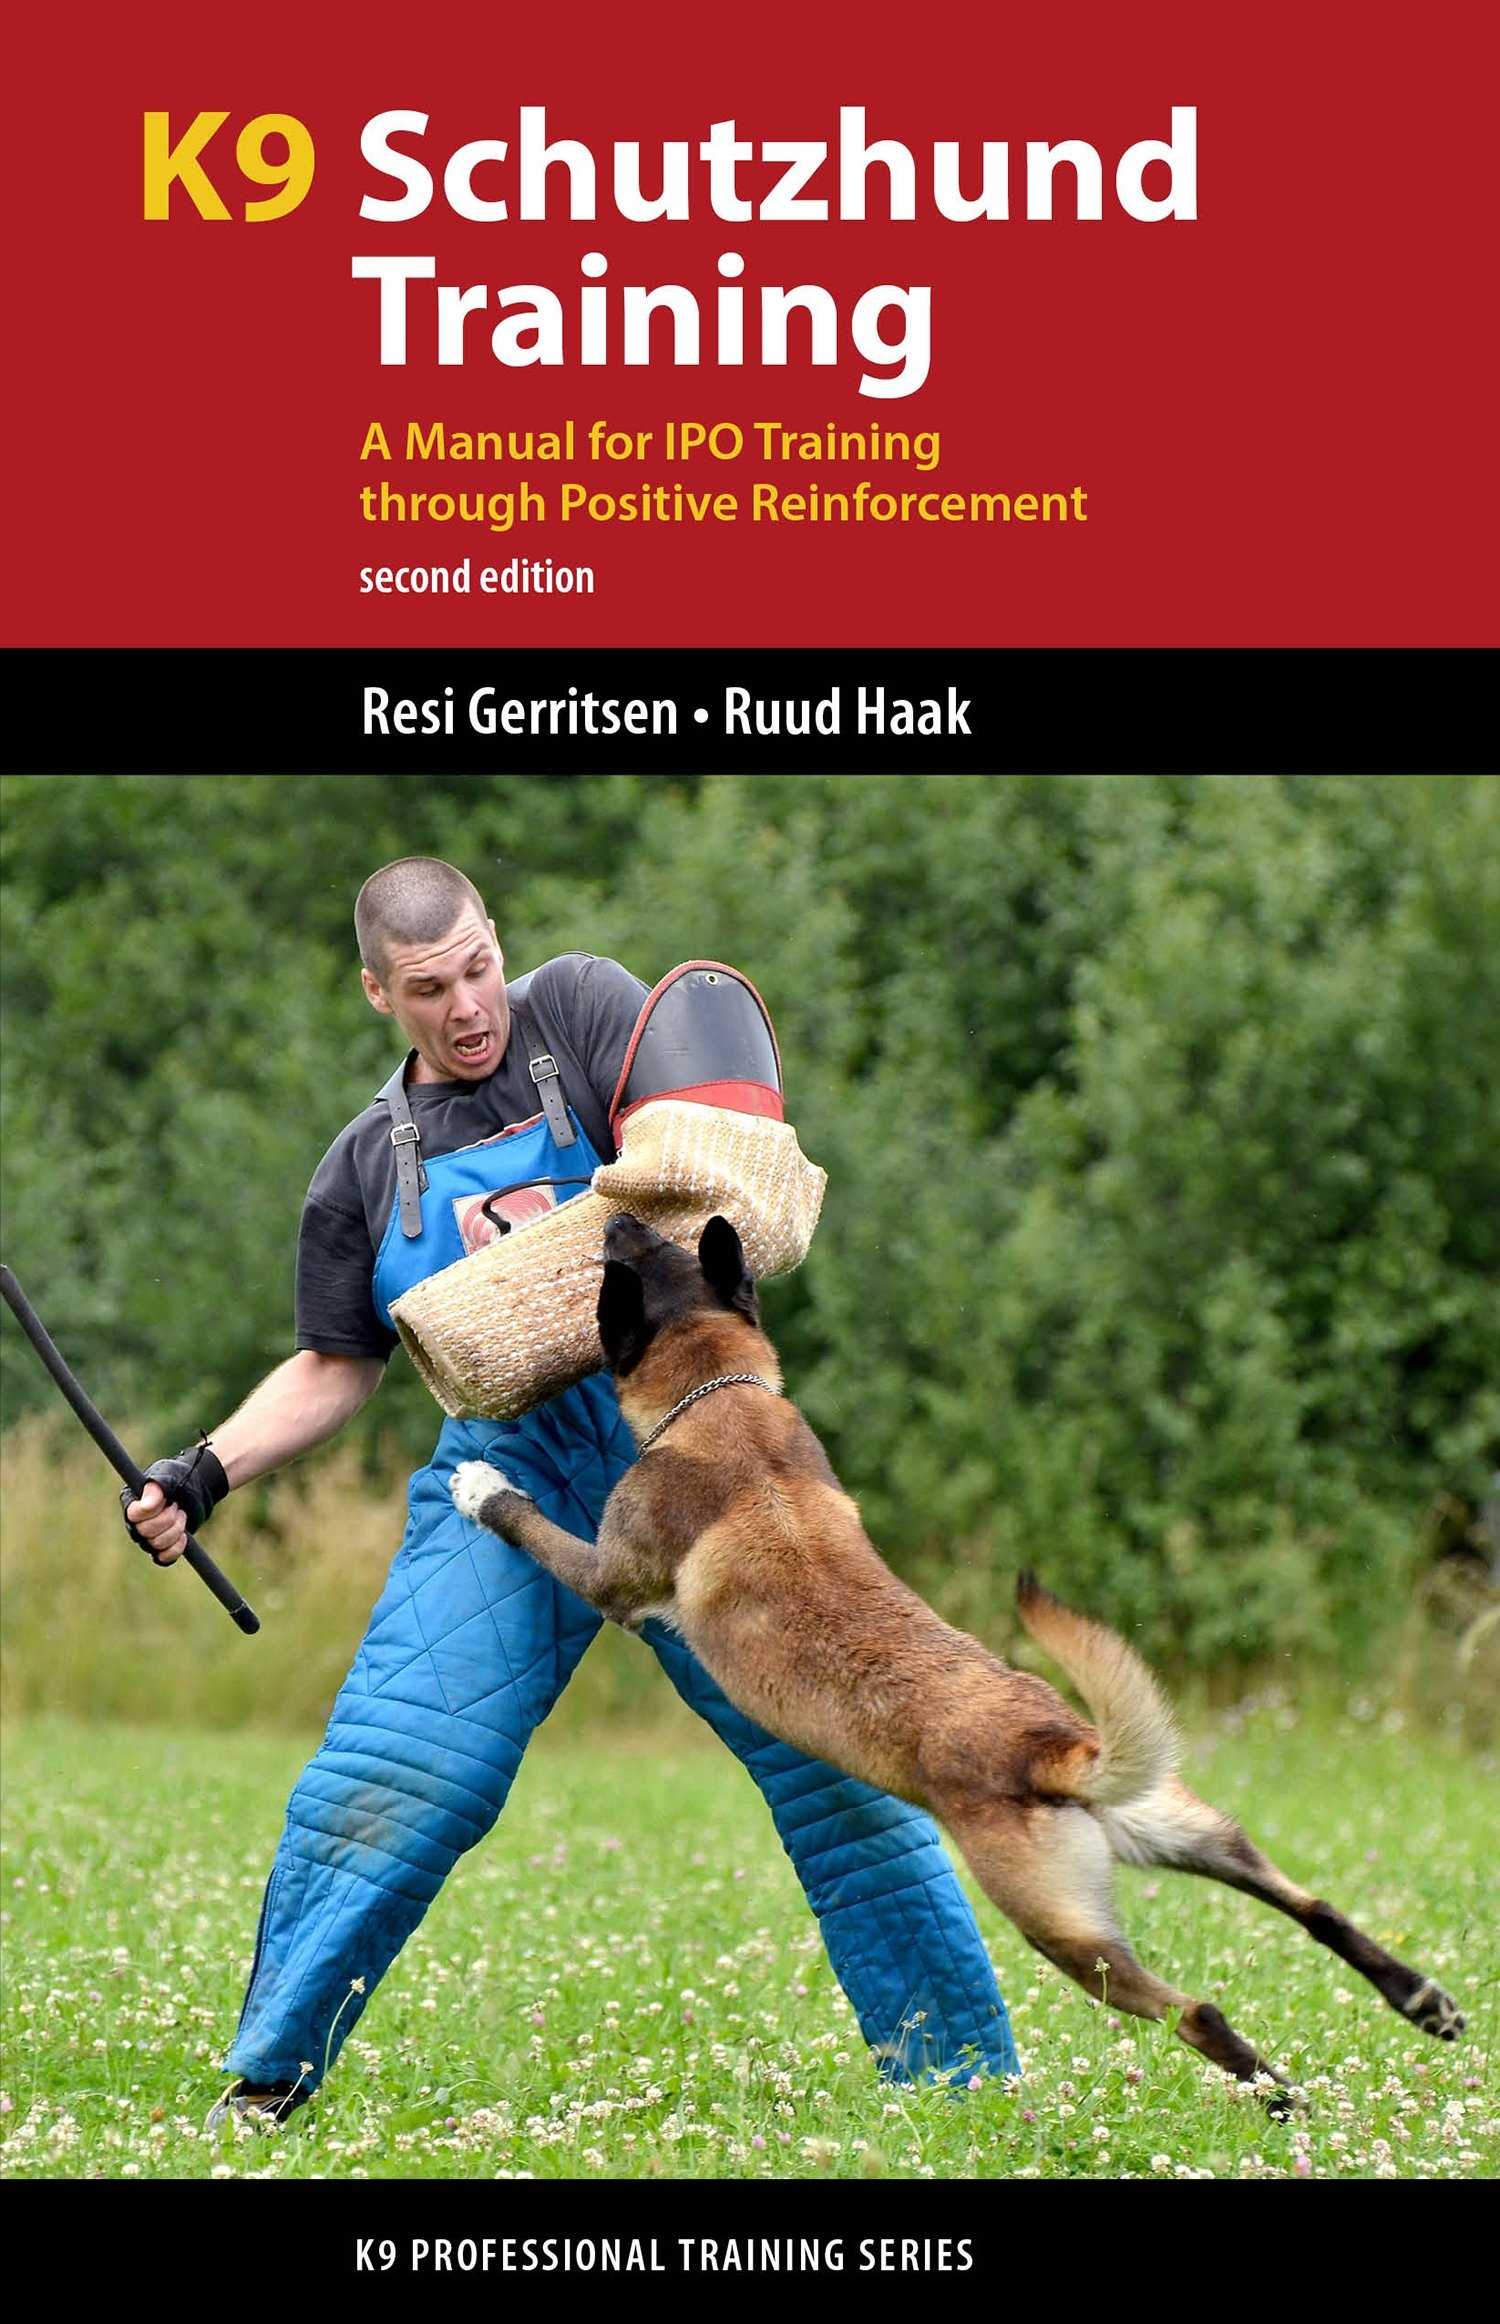 K9 Schutzhund Training: A Manual For IPO Training Through Positive Reinforcement (K9 Professional Training Series) (Englis...